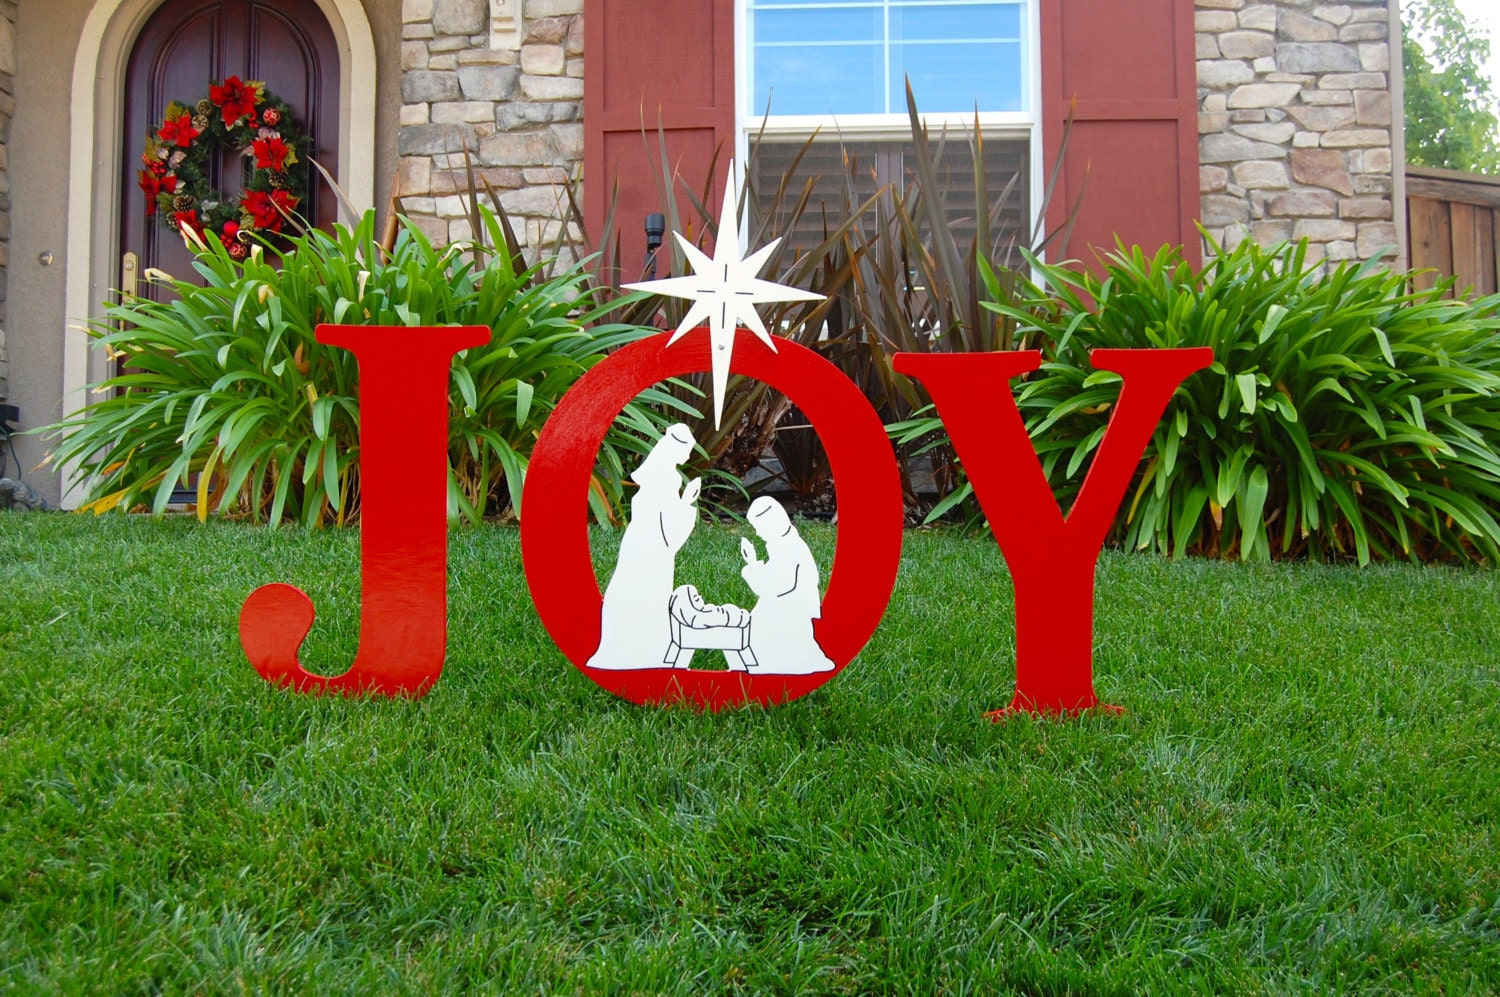 Joy nativity outdoor holiday christmas yard art sign for Christmas lawn decorations